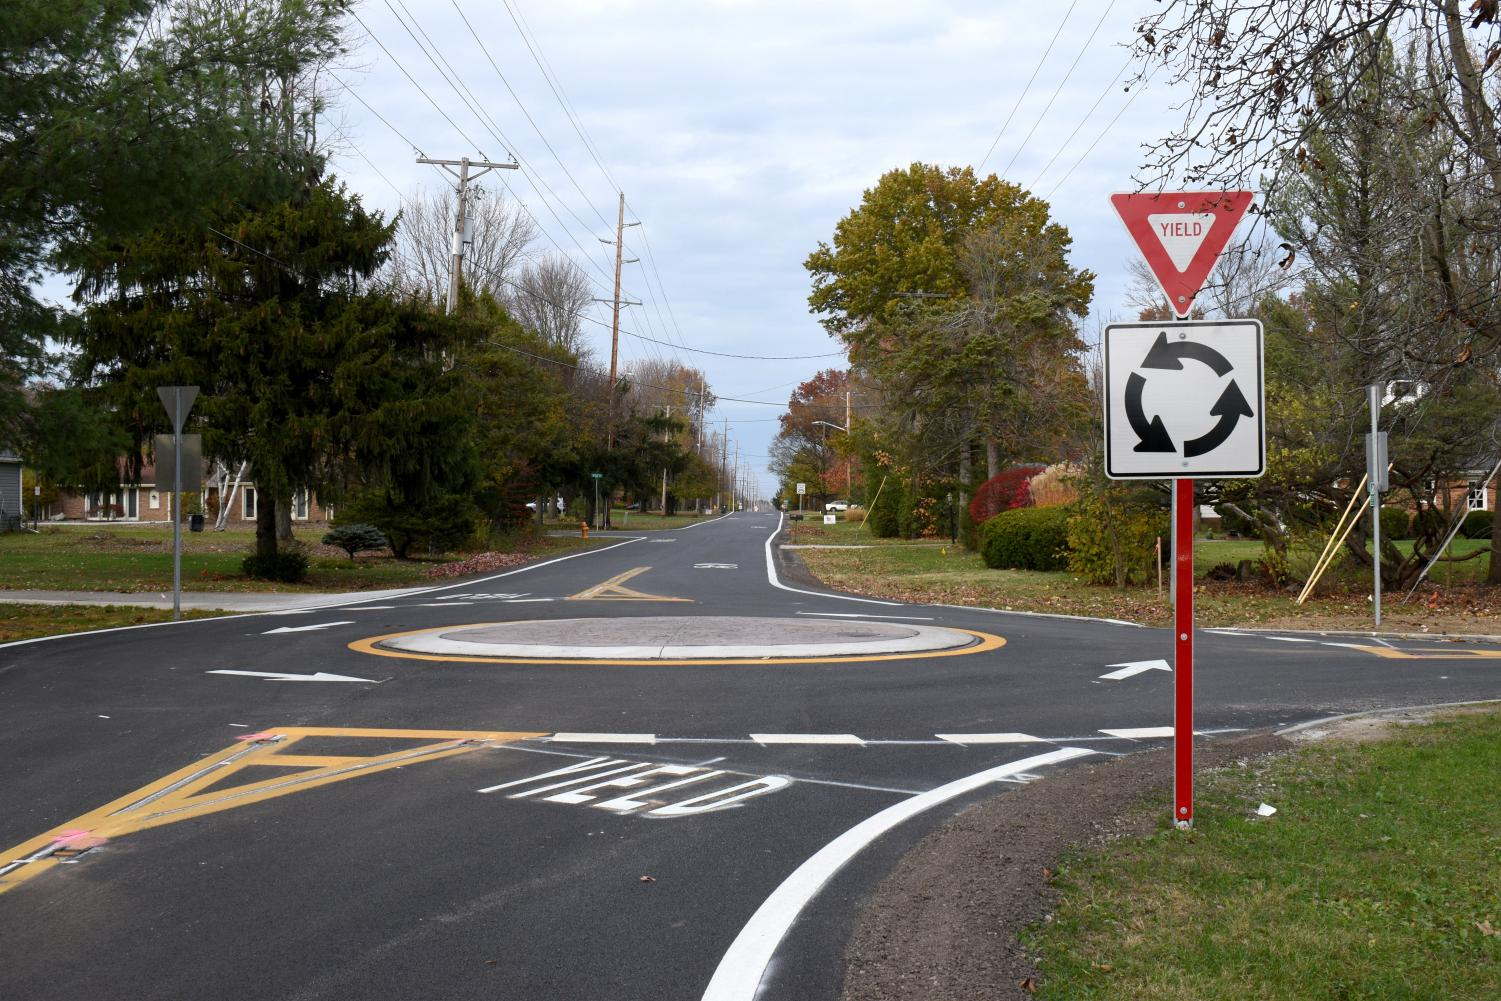 A newly-installed roundabout on Pyle South Amherst Road in Oberlin.